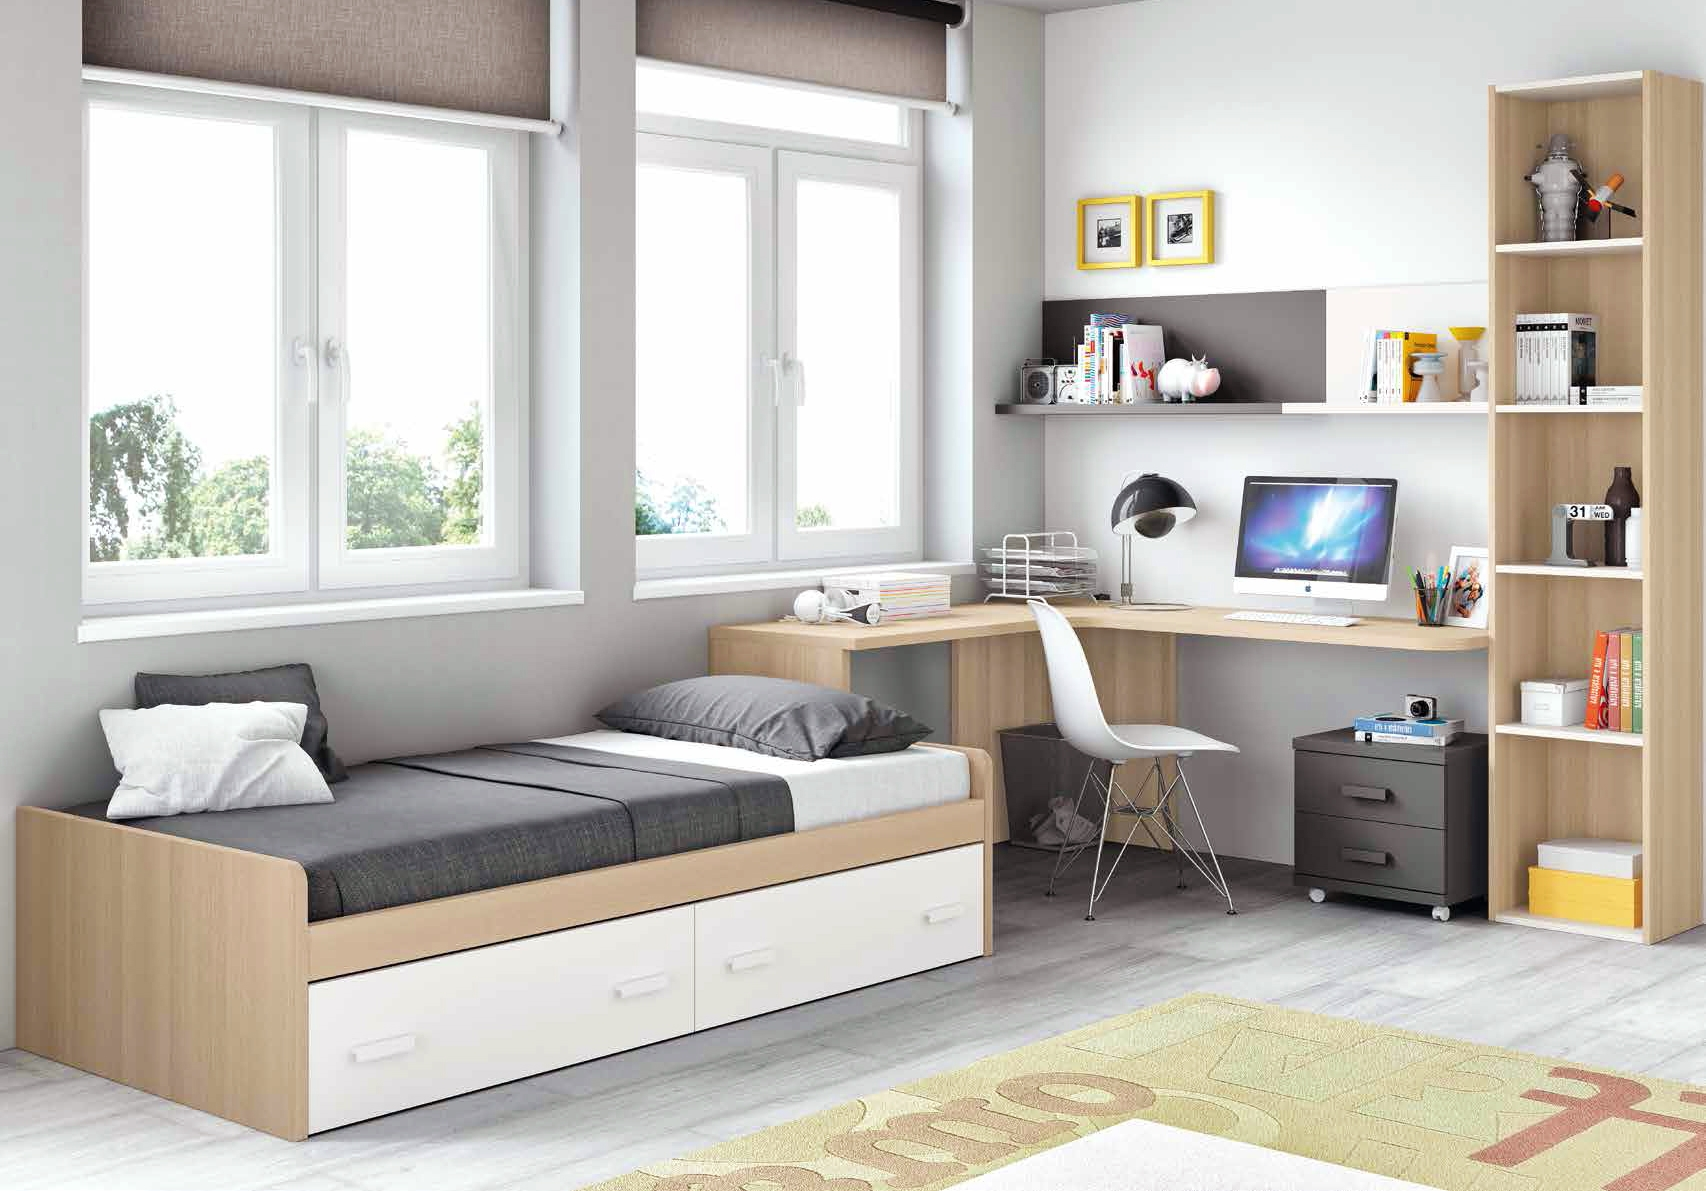 chambre moderne ado et fun avec lit 2 coffres glicerio. Black Bedroom Furniture Sets. Home Design Ideas